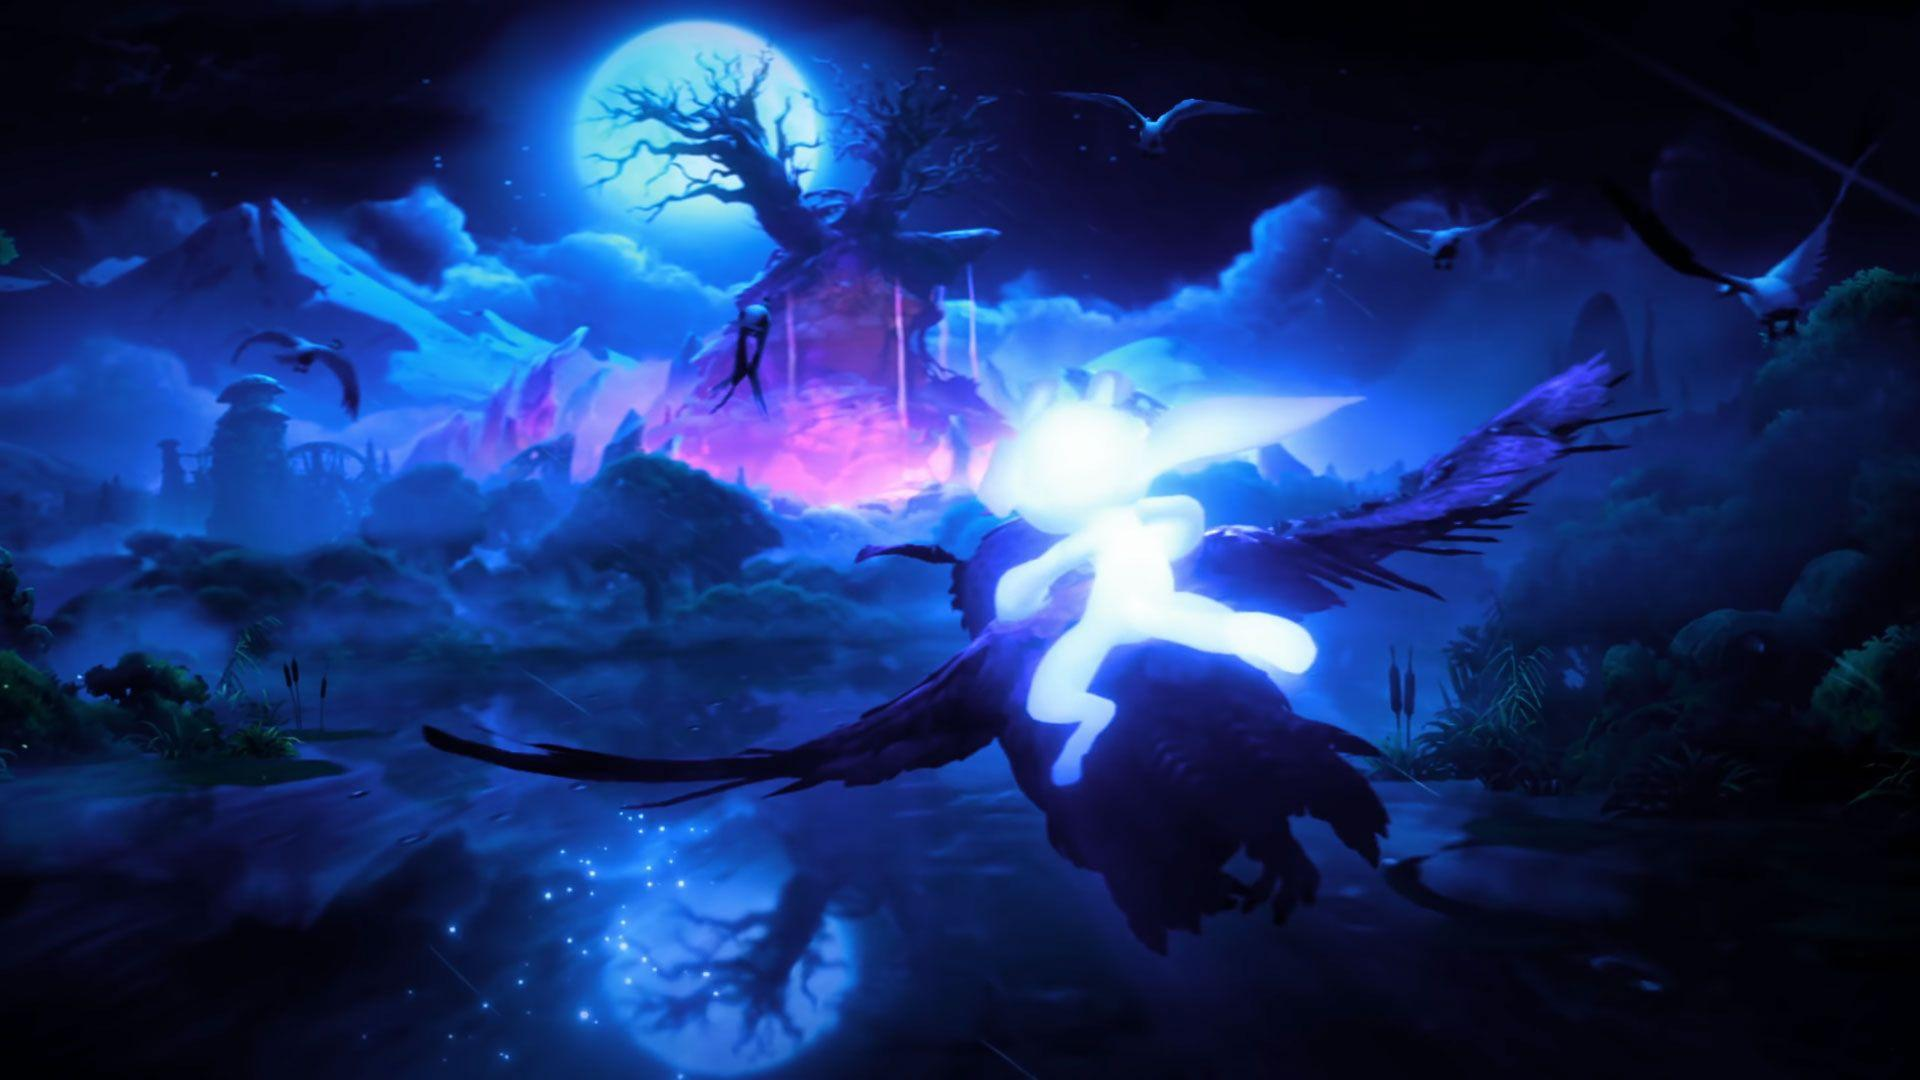 Ori And The Will Of The Wisps Wallpapers Wallpaper Cave